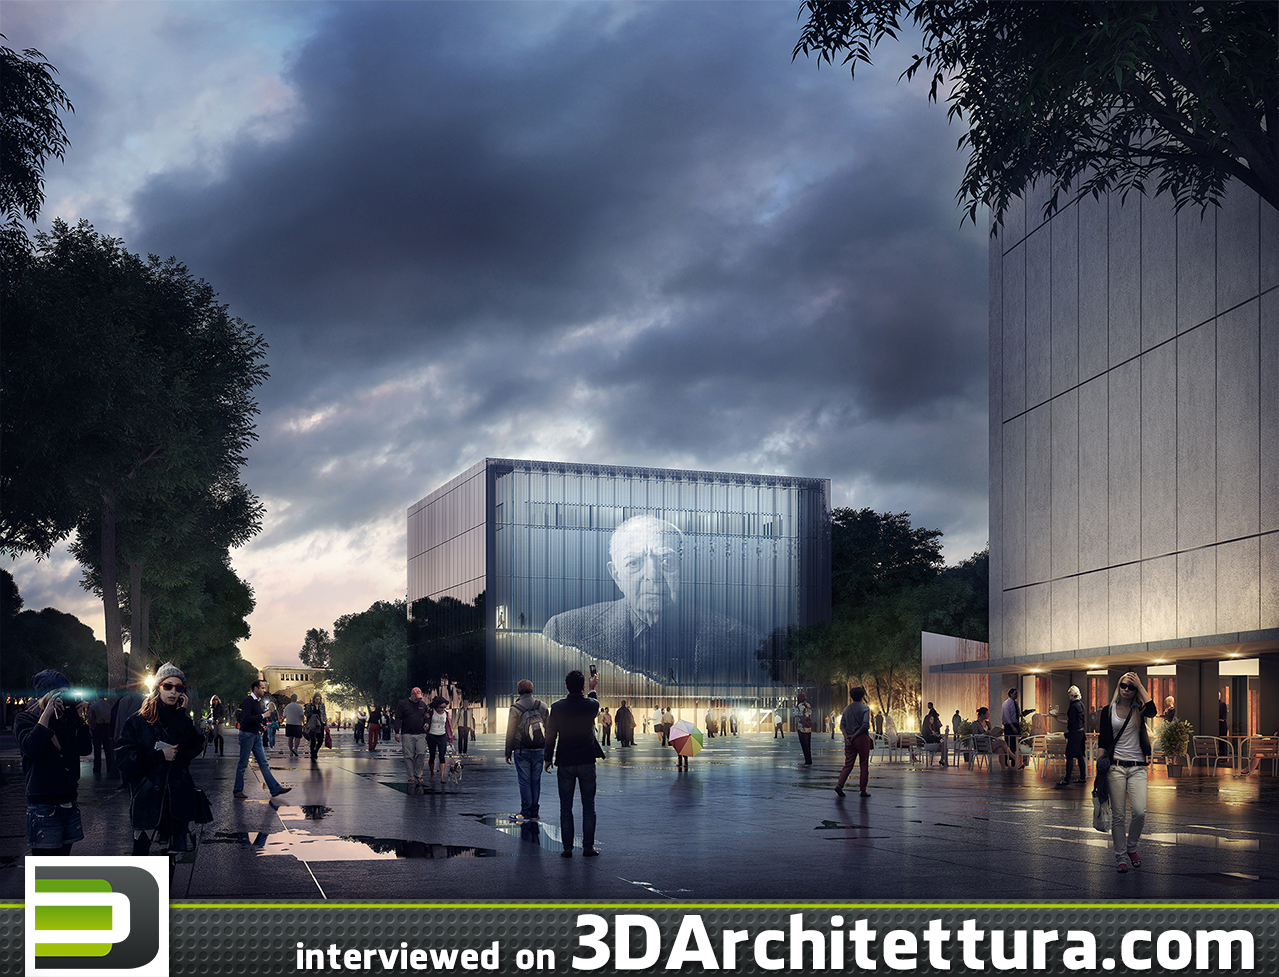 András Káldos , CEO at Brick Visual, Hungary, spoke to 3DArchitettura about artistic architectural visualizations and keeping up with technological progress